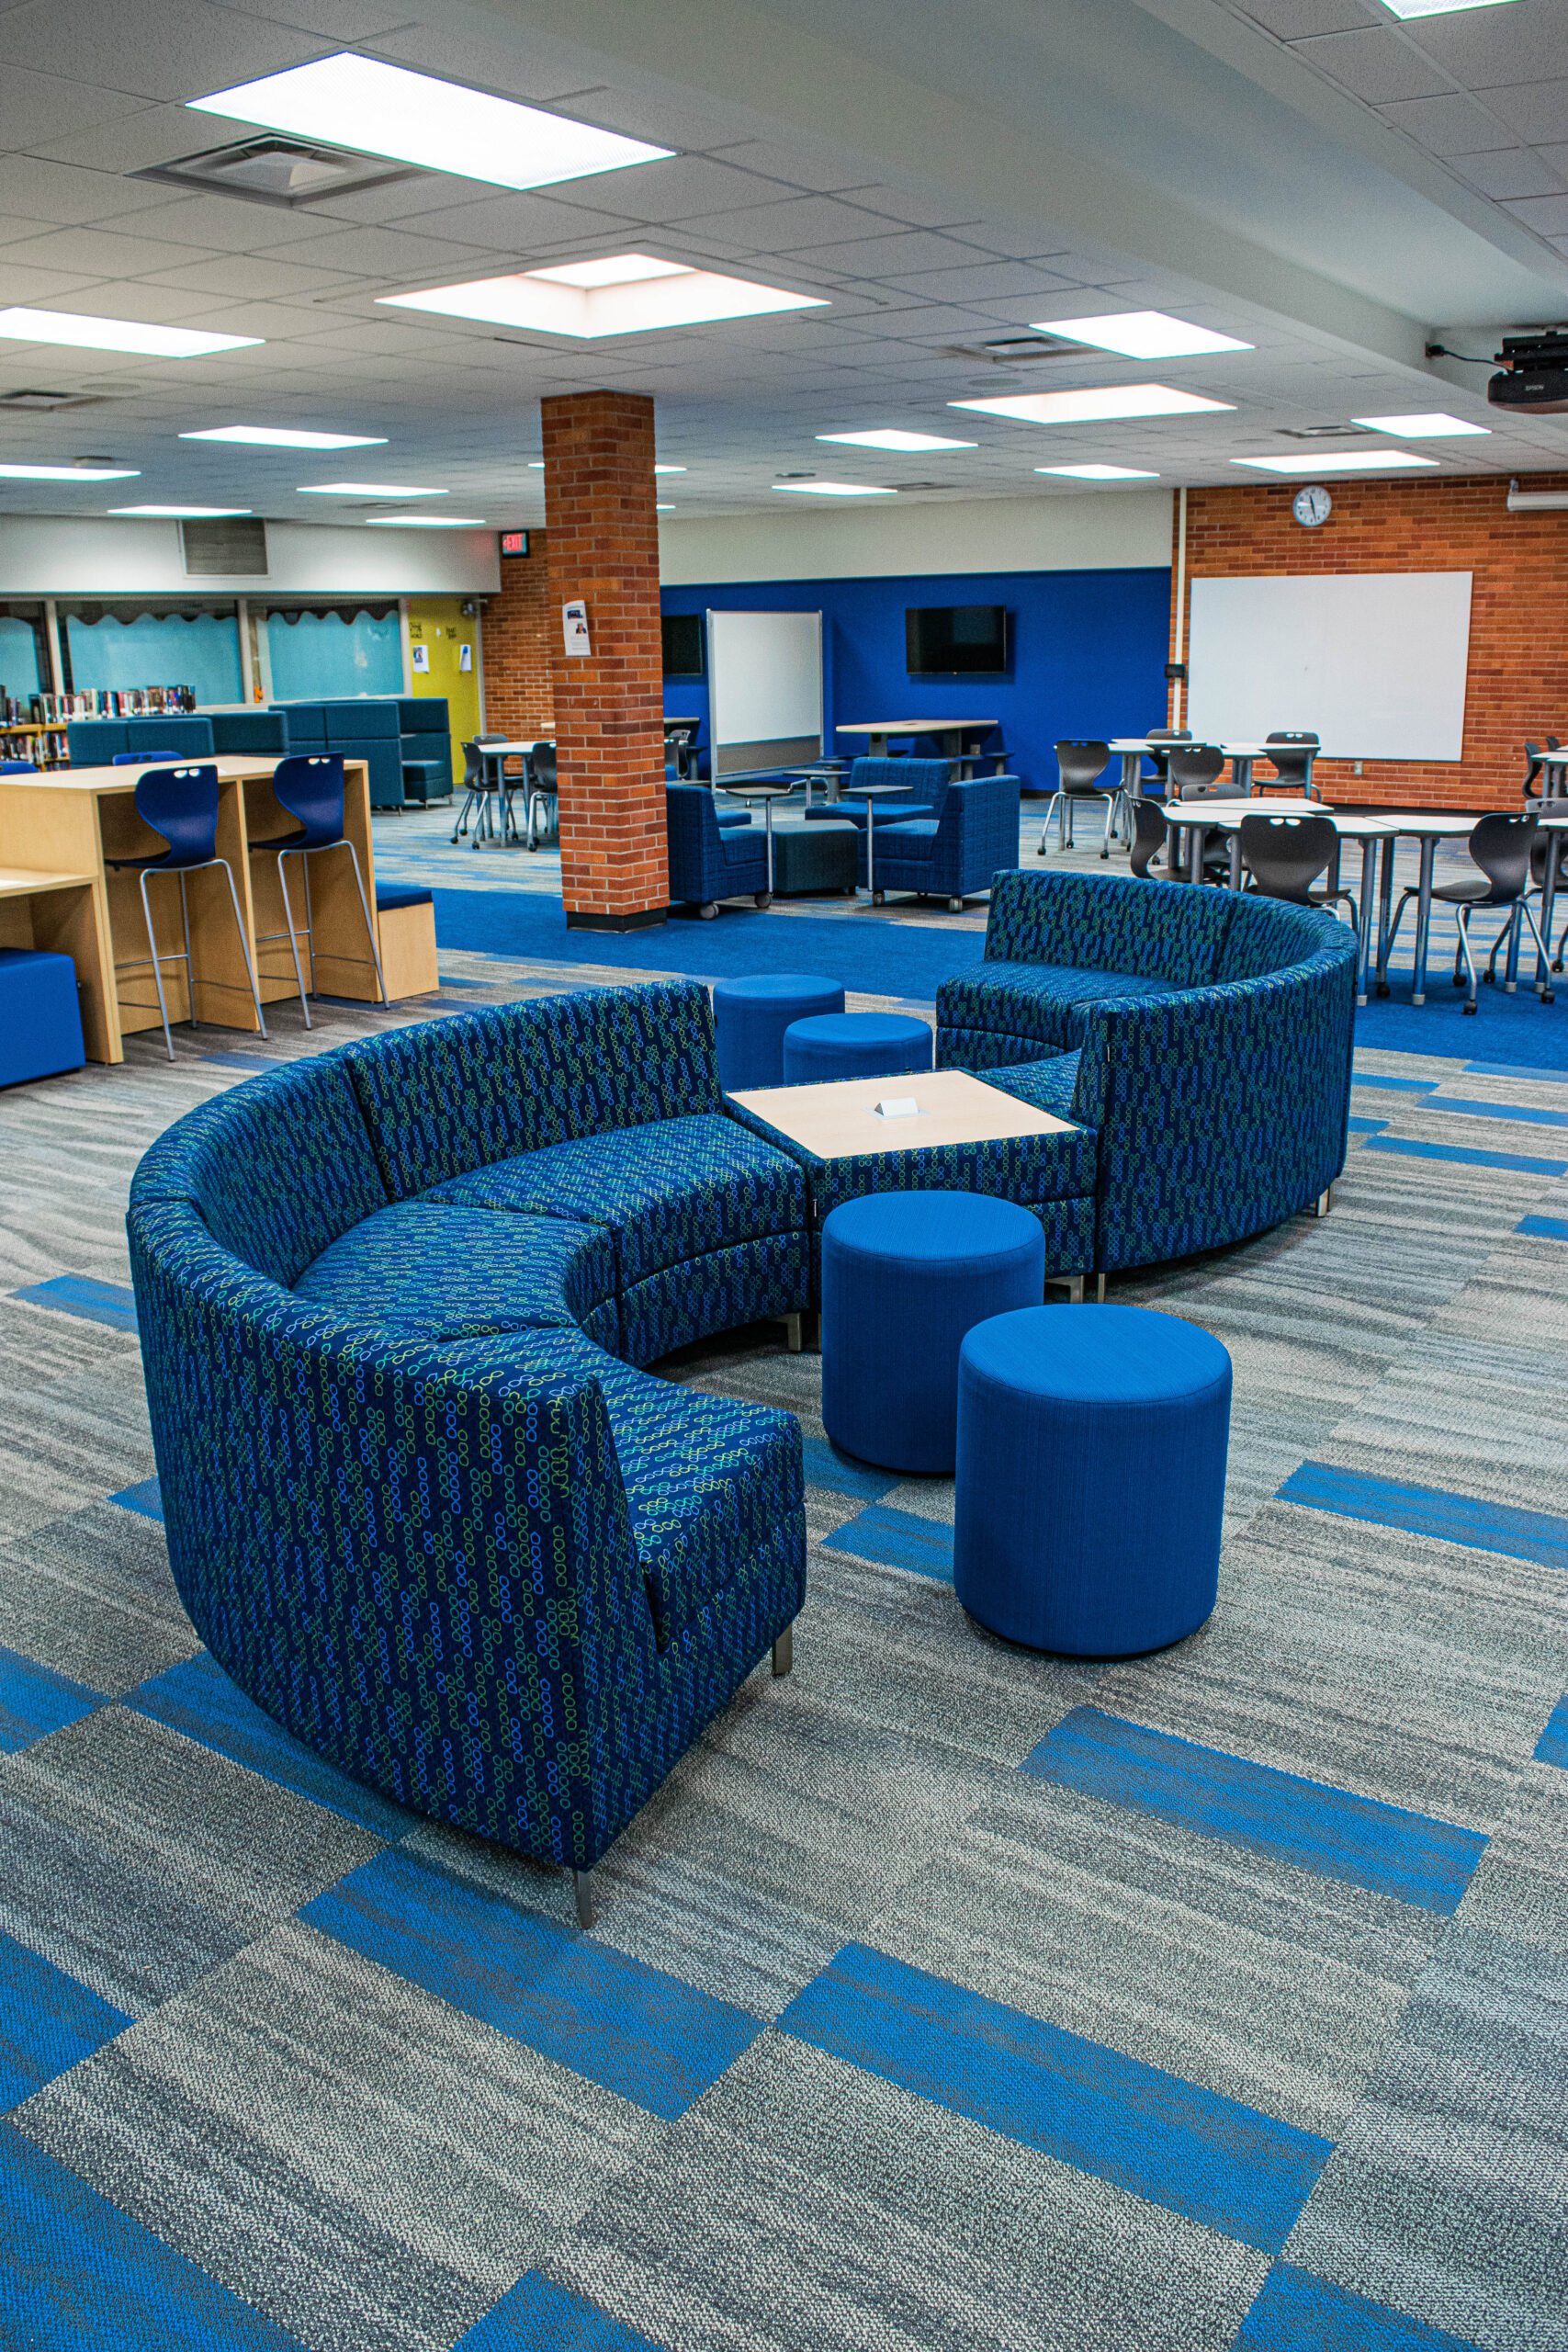 Designing Responsive Learning Spaces Throughout a School